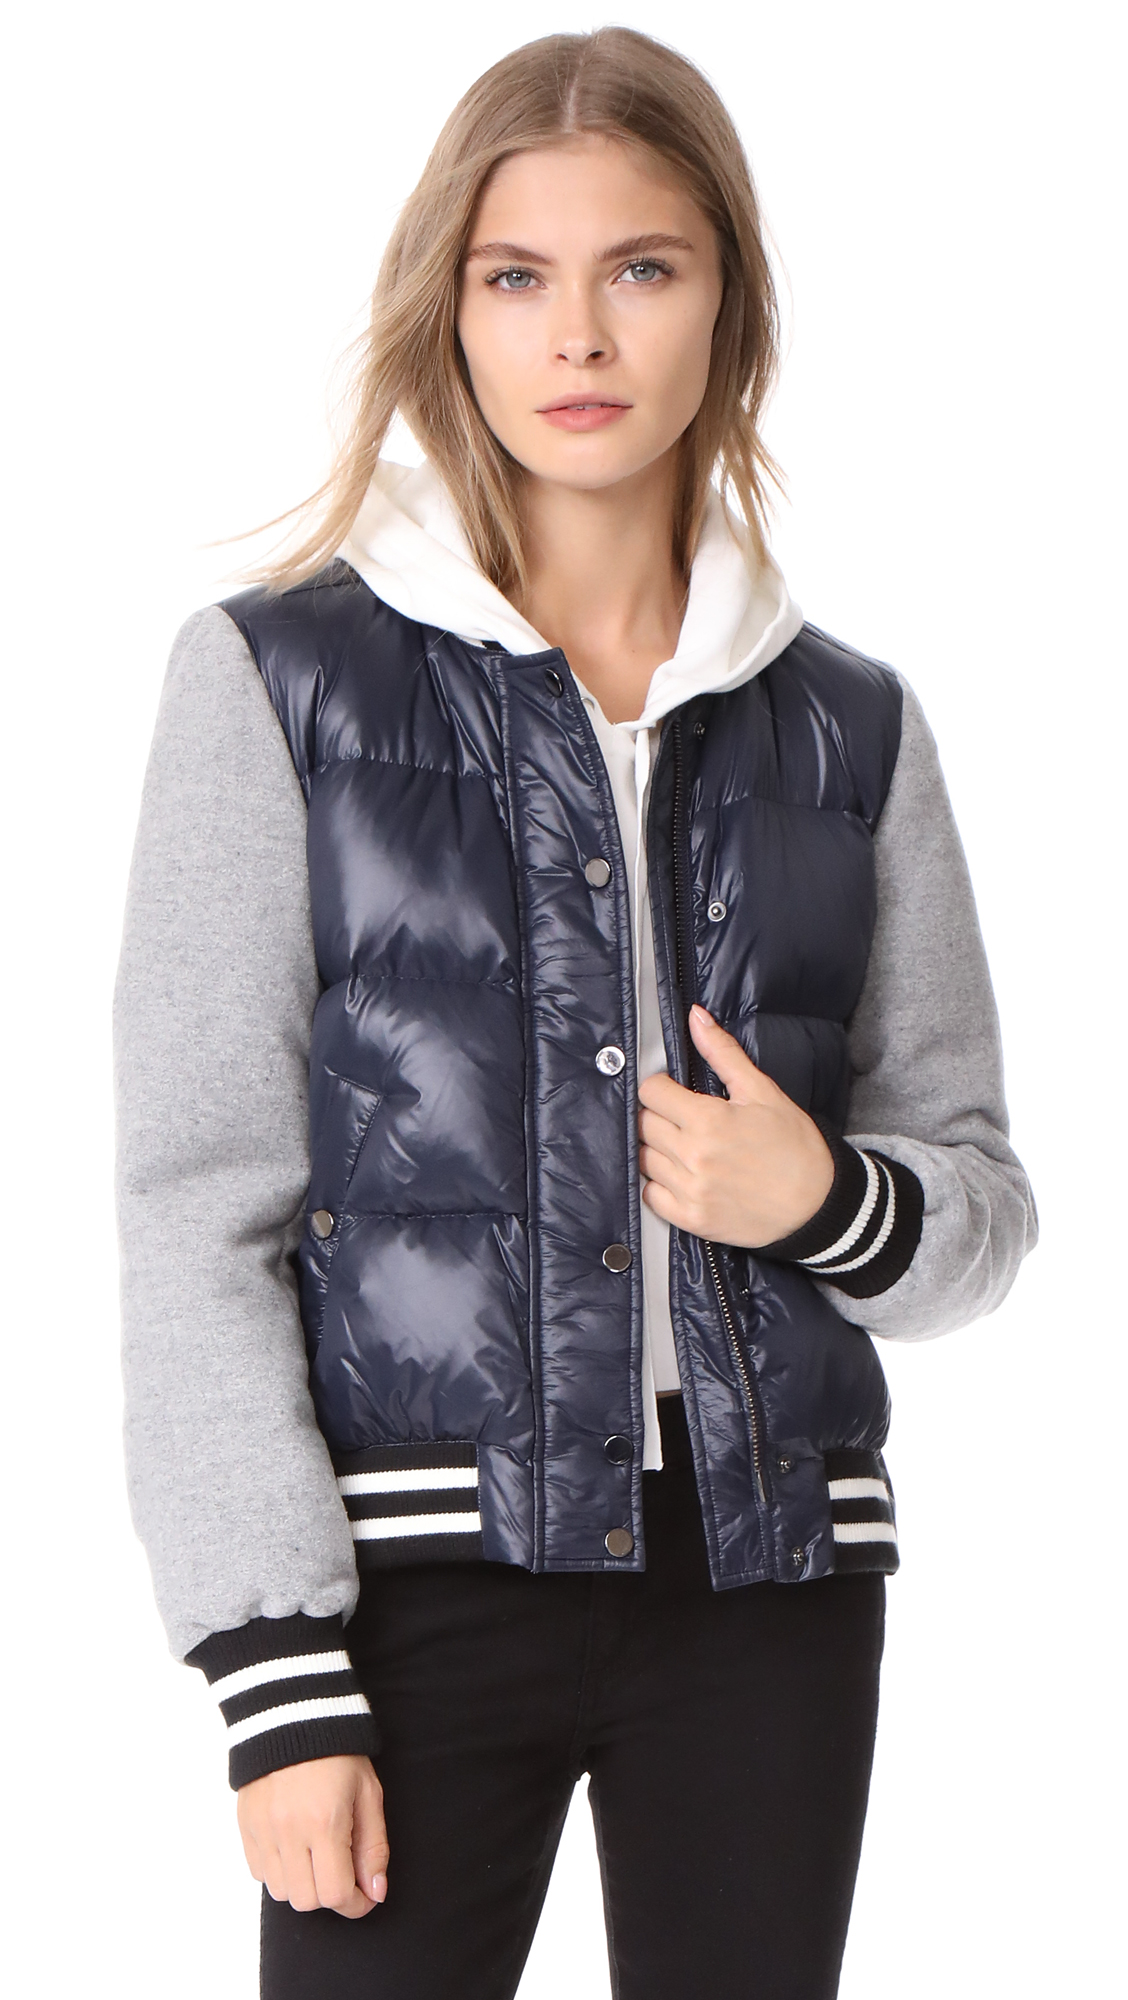 Veronica Beard Lennon Swing Puffer Jacket - Navy